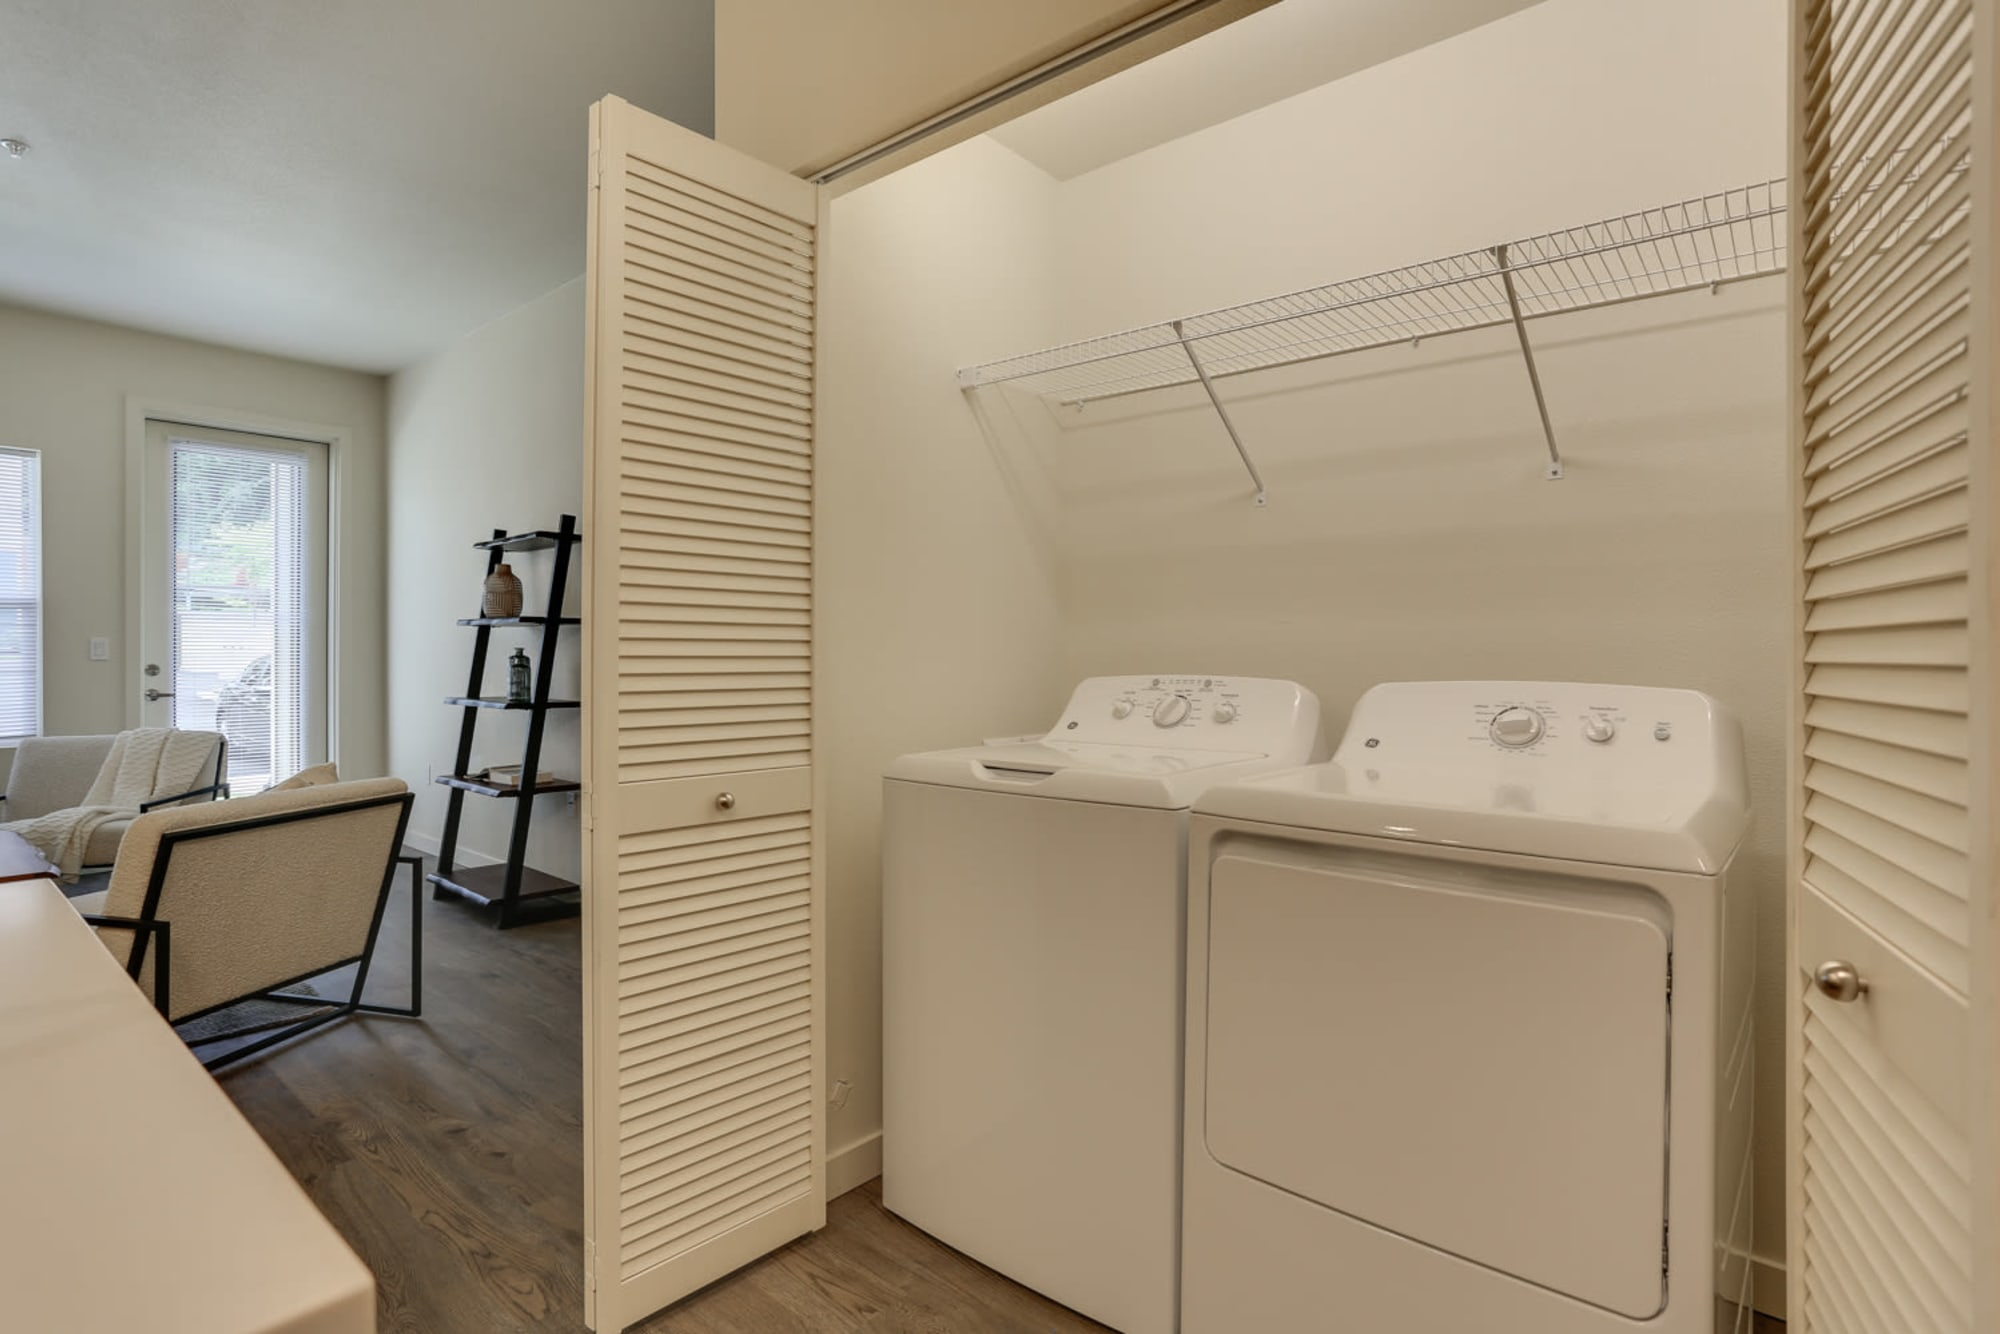 Washer and dryer at Haven Hills in Vancouver, Washington